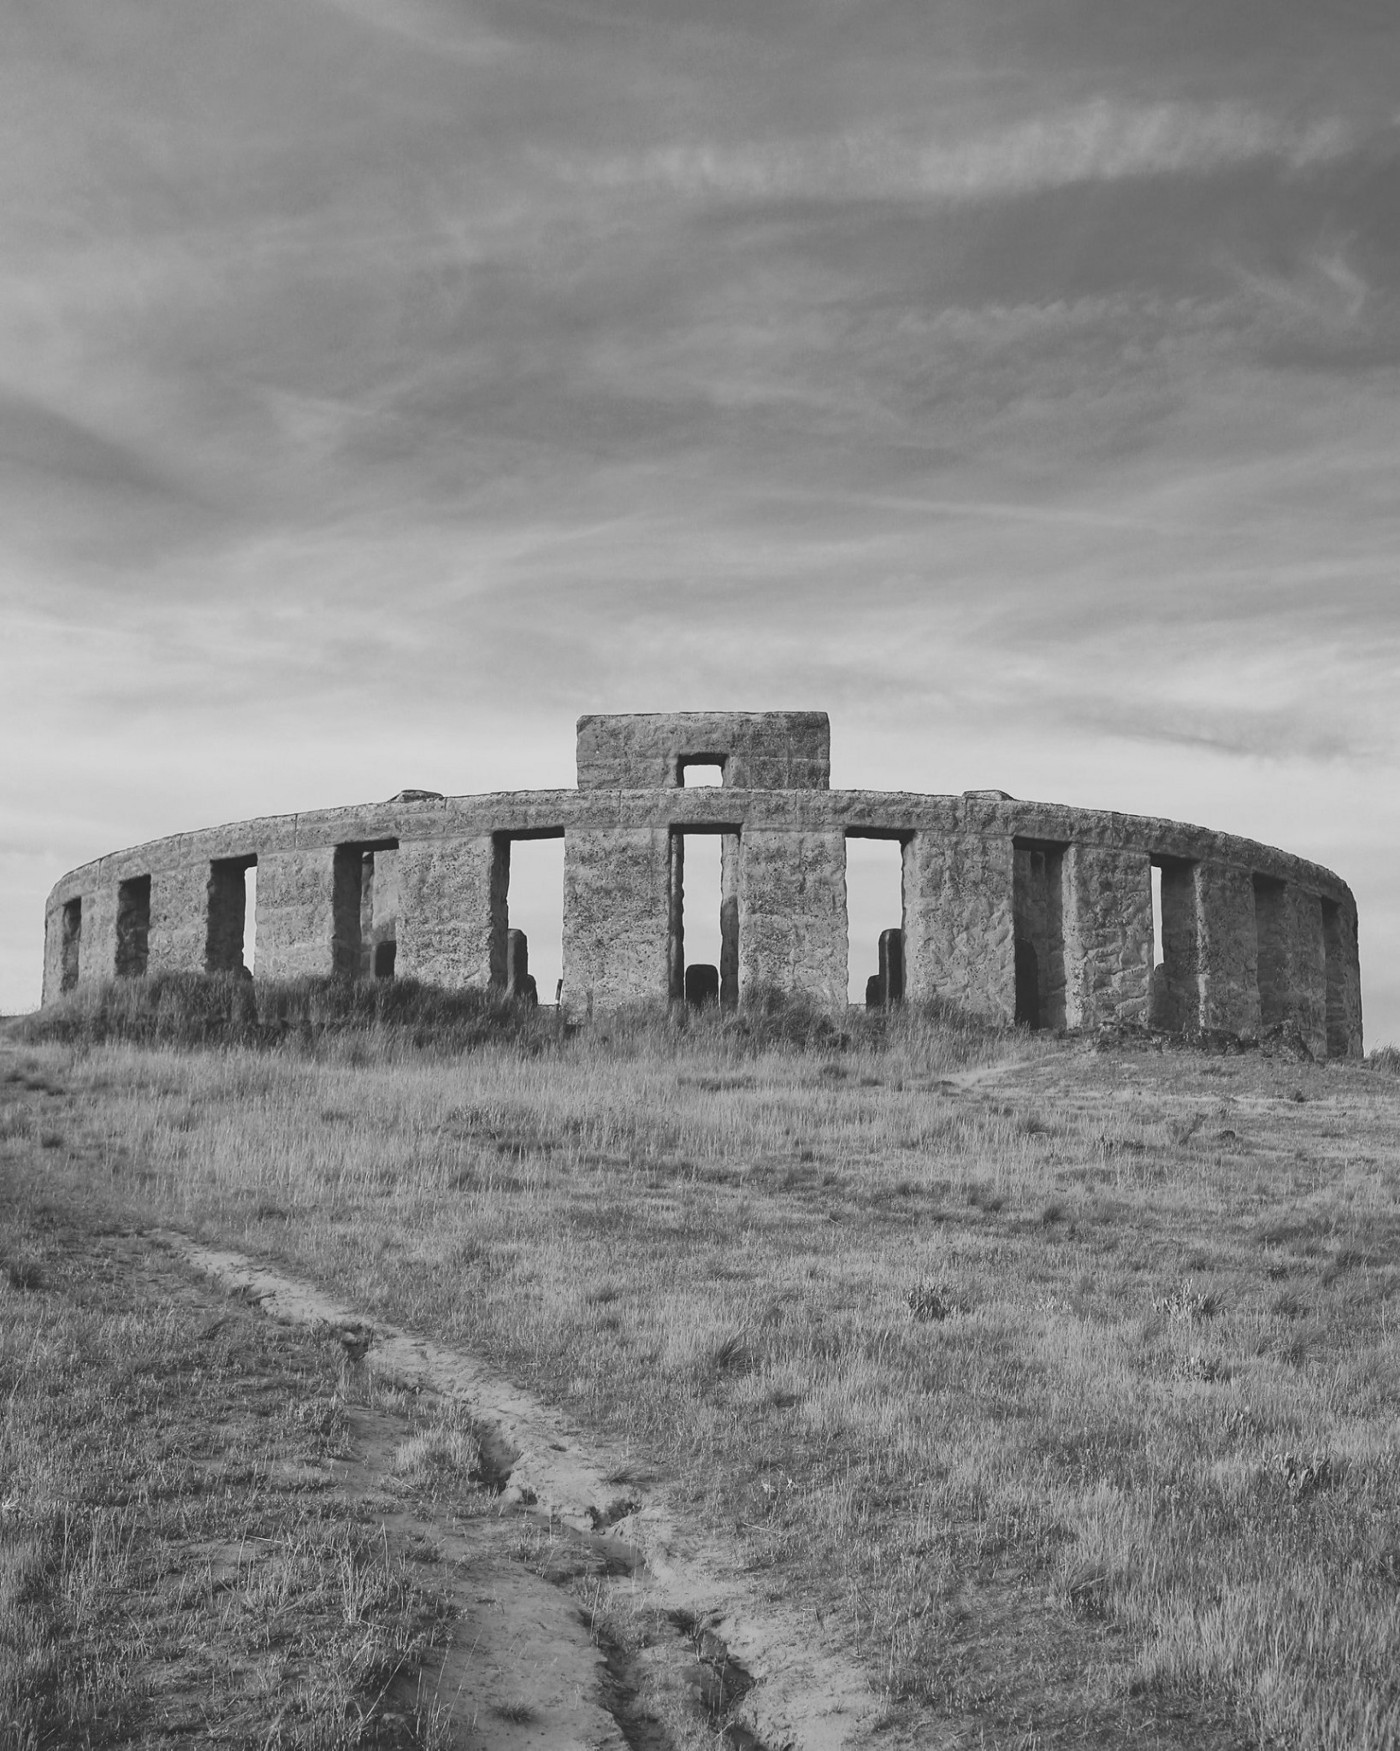 Did you know there's a Stonehenge in Rural Washington?